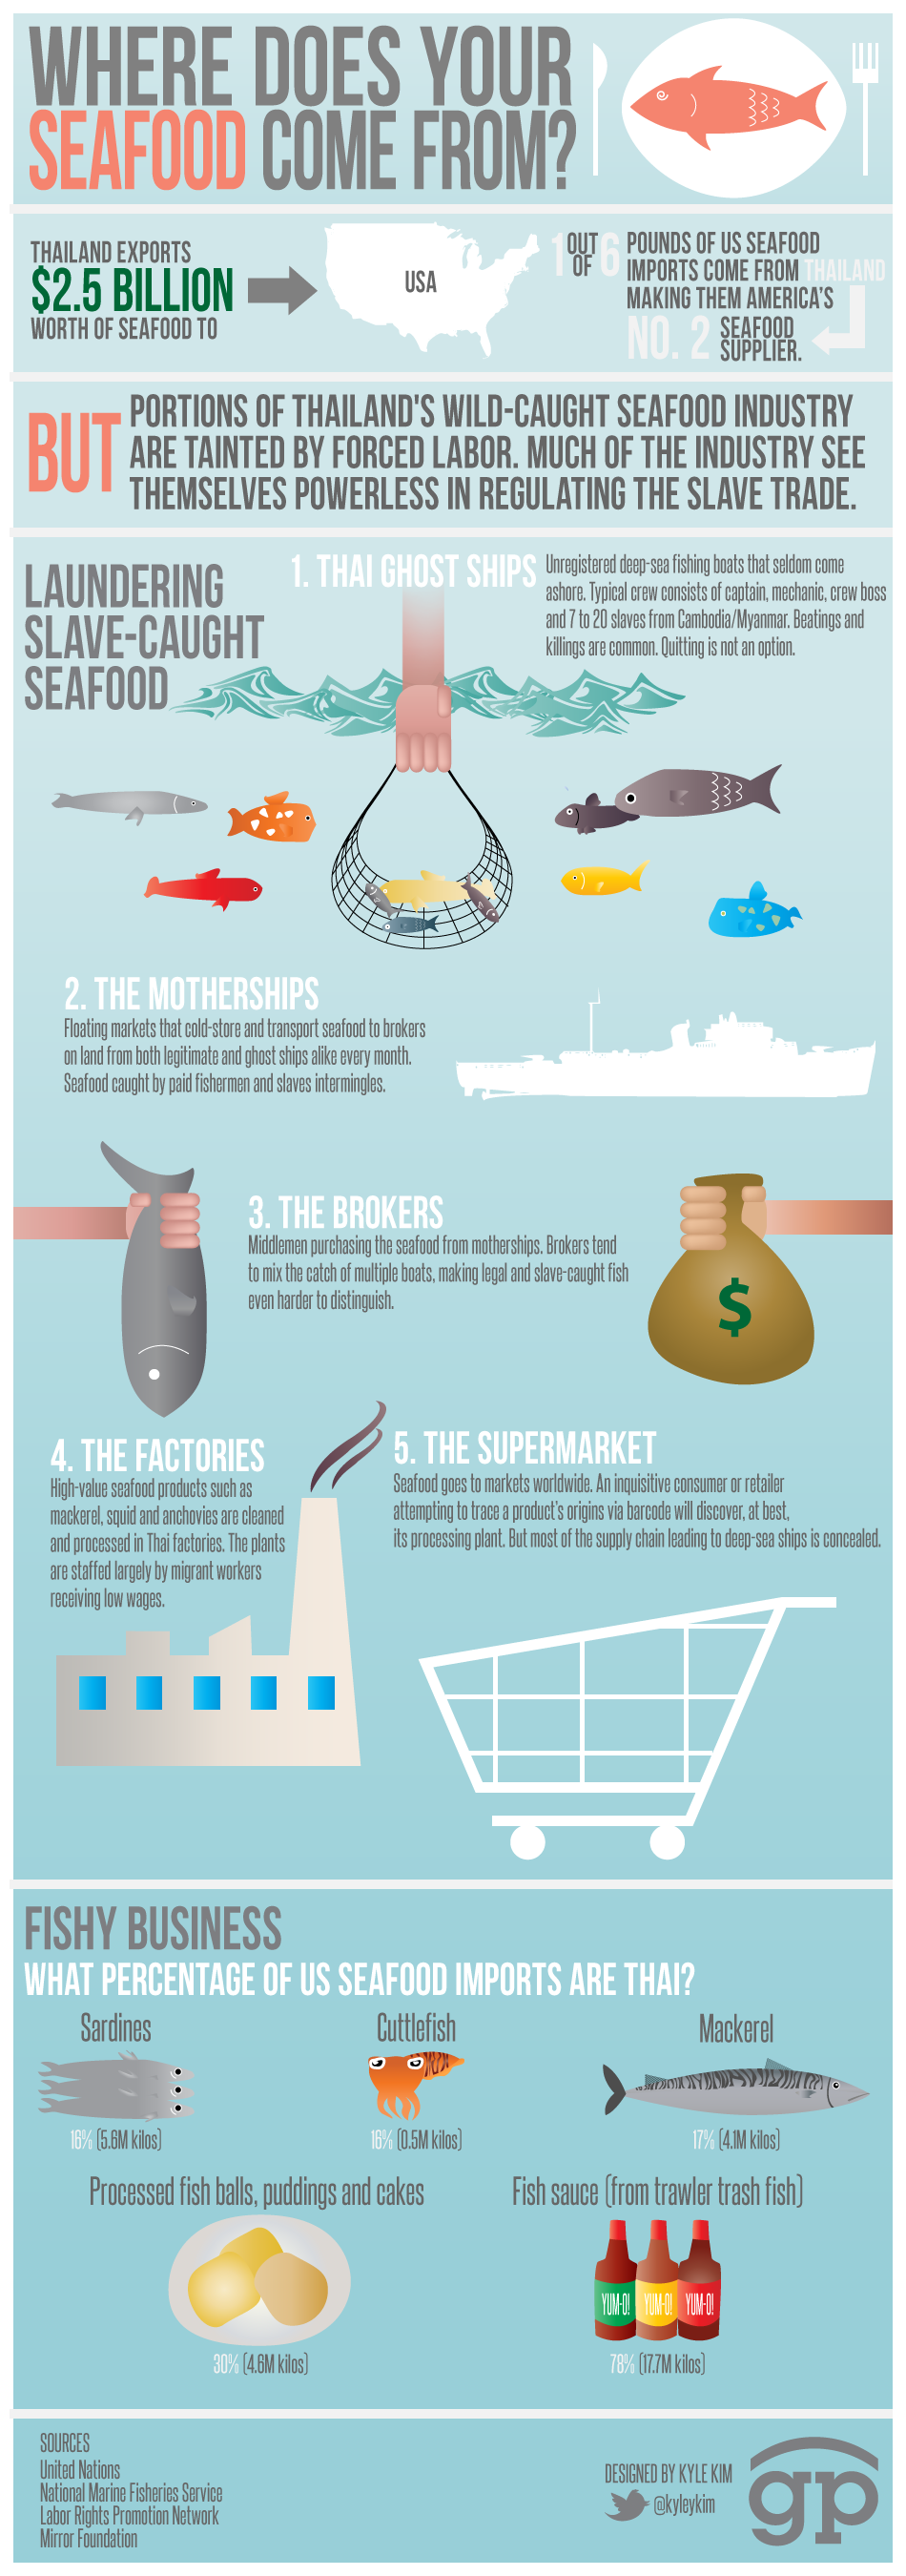 Where-Does-Your-Seafood-Come-From-infographic